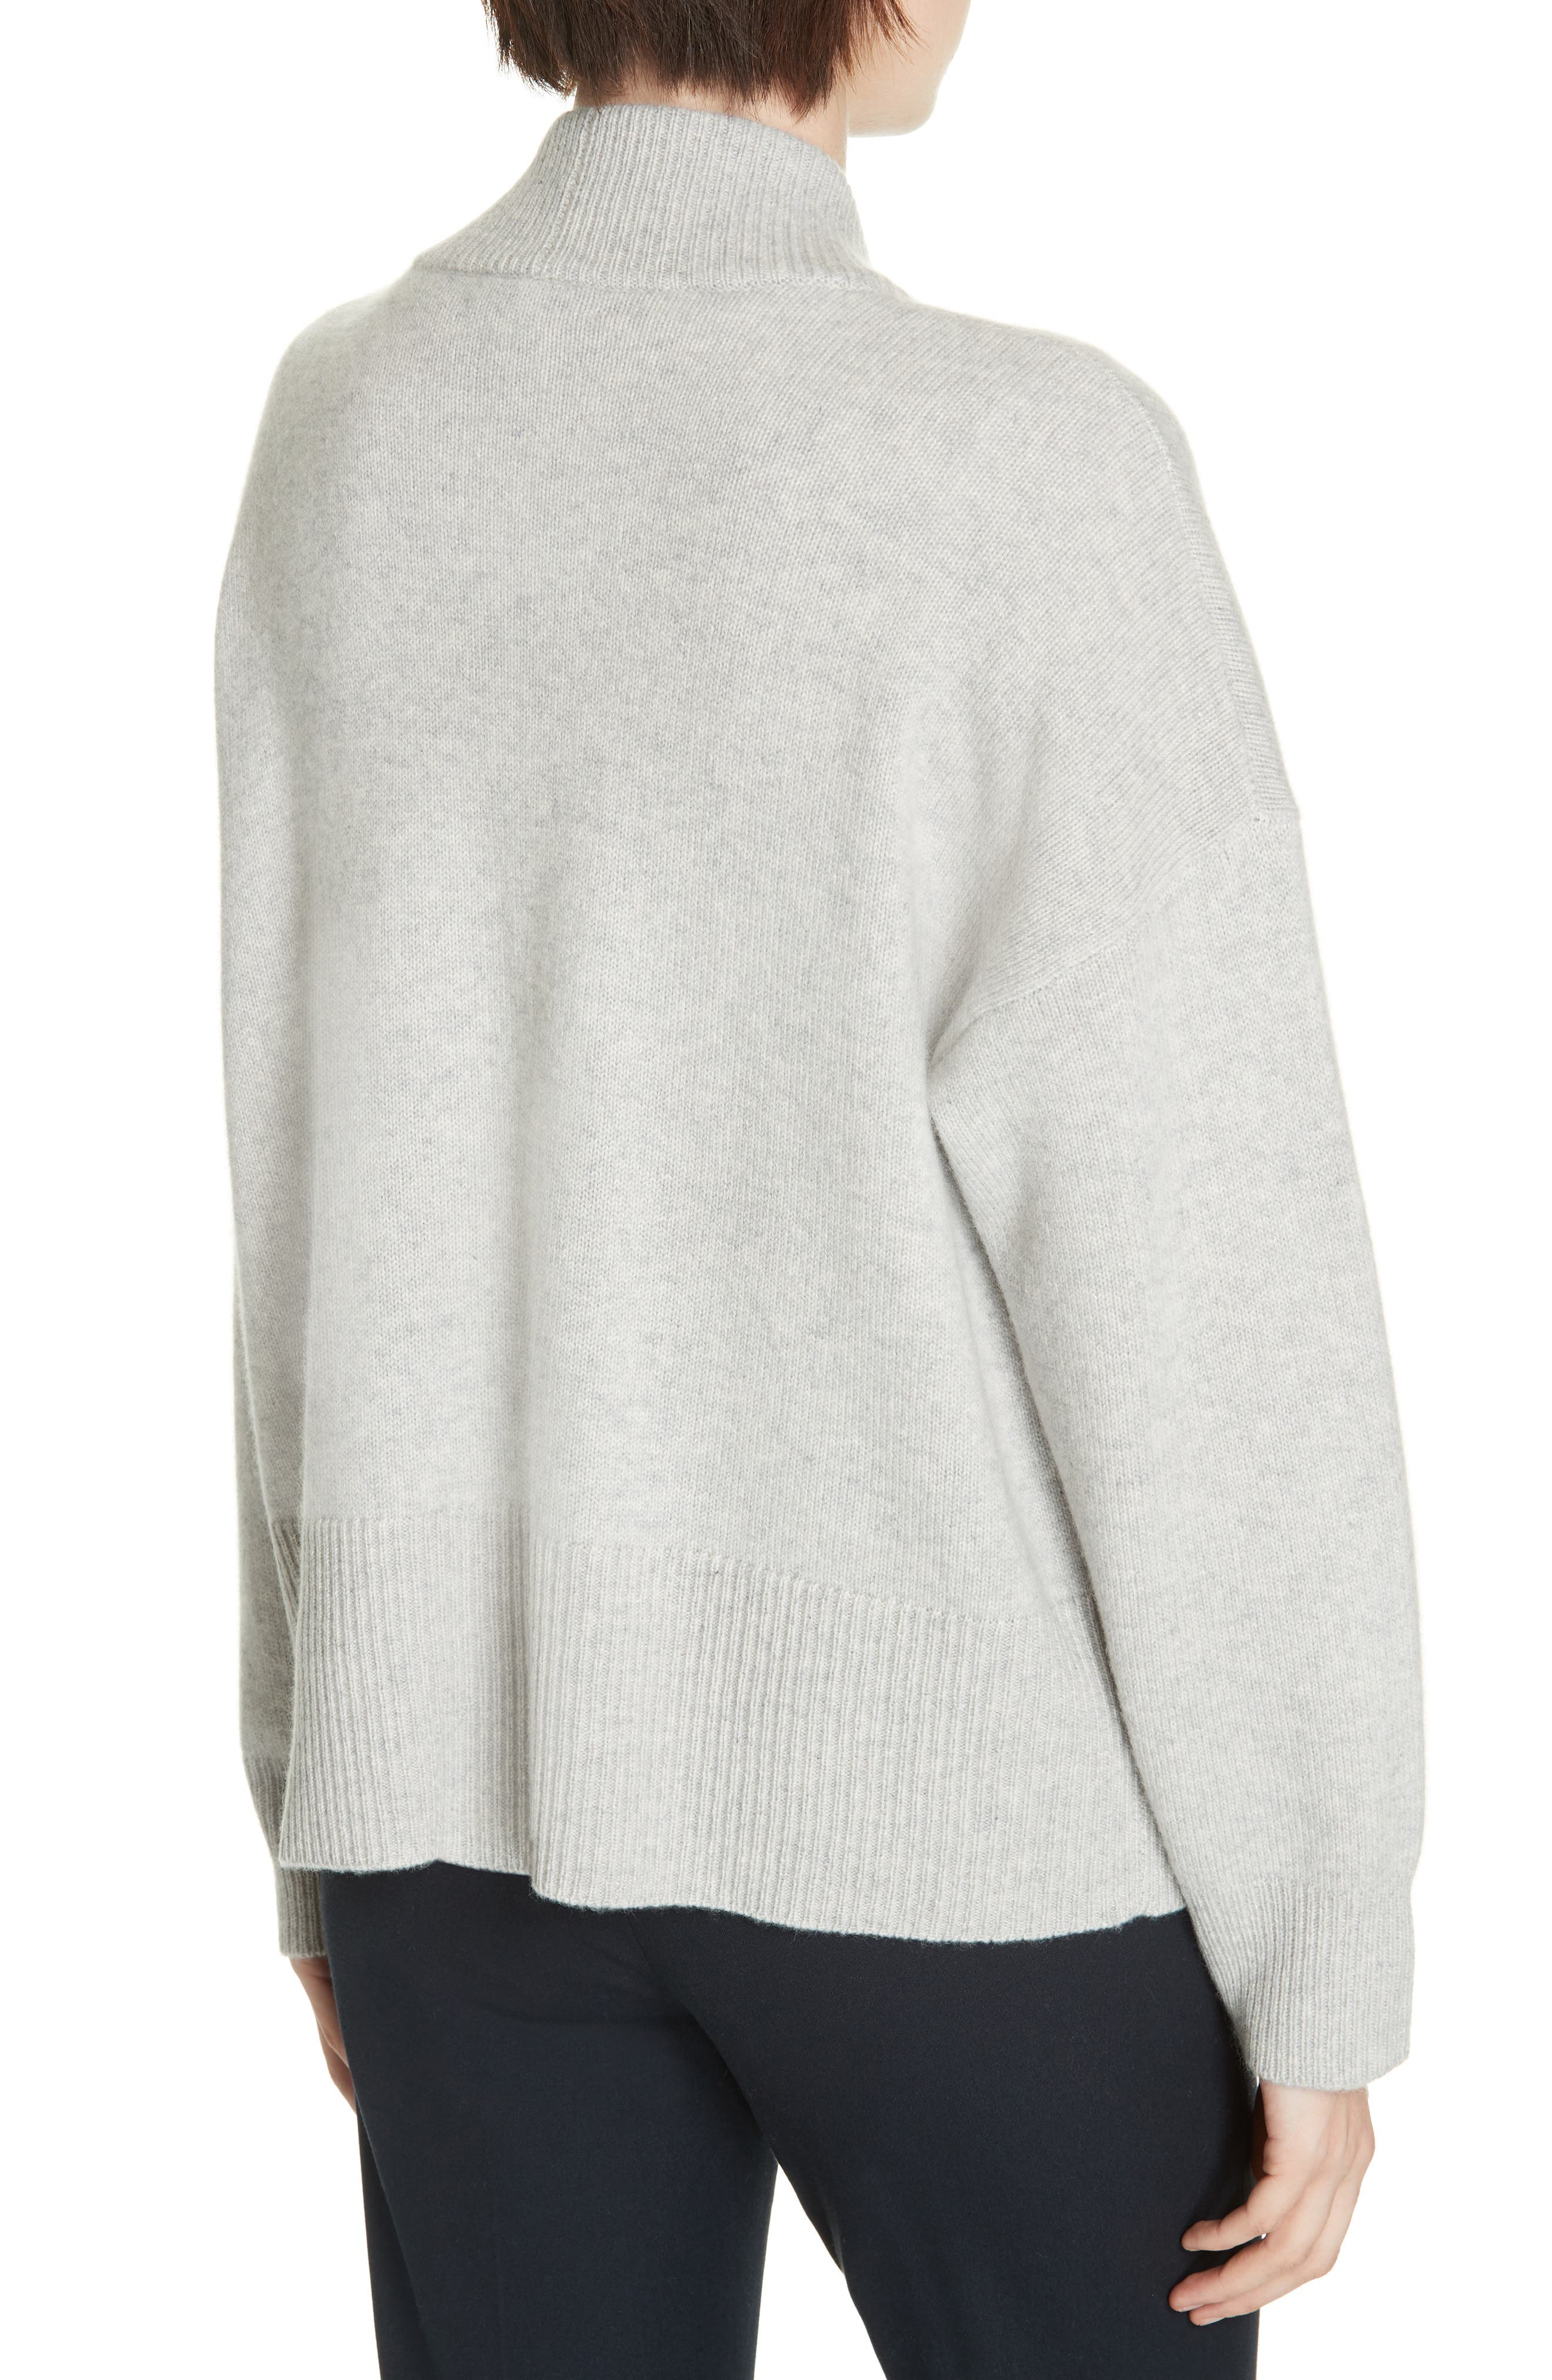 NORDSTROM SIGNATURE, Cashmere Blend Cardigan, Alternate thumbnail 2, color, GREY CLAY HEATHER